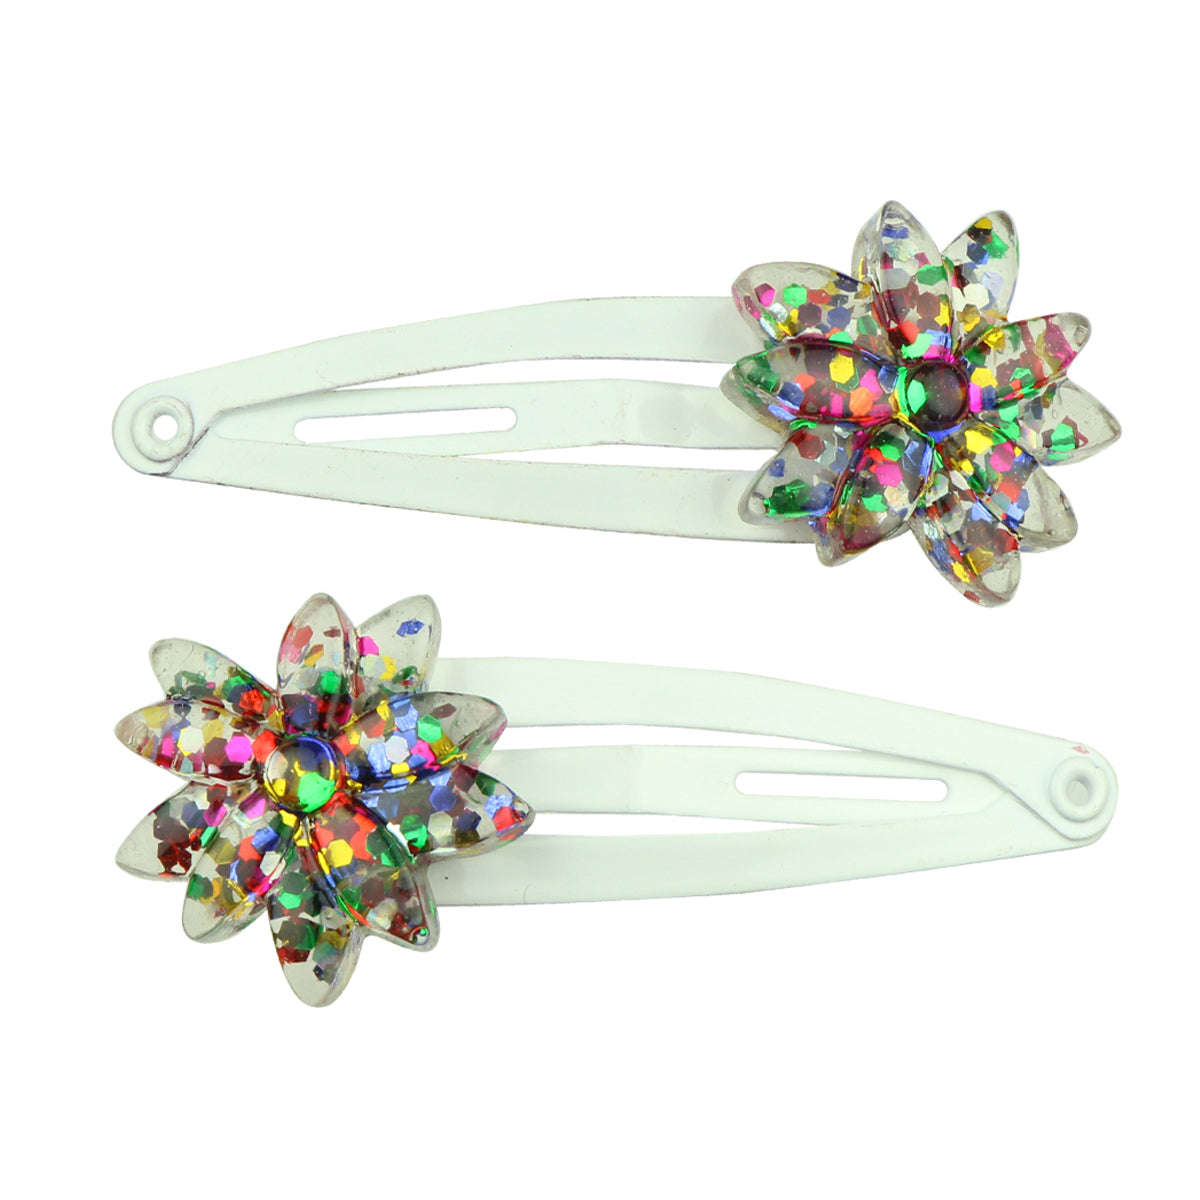 poly resin glitter daisy flower hair clip white tapper snap girl hair grip wholesale 7736 - SOHOBUCKS CO.,LIMITED